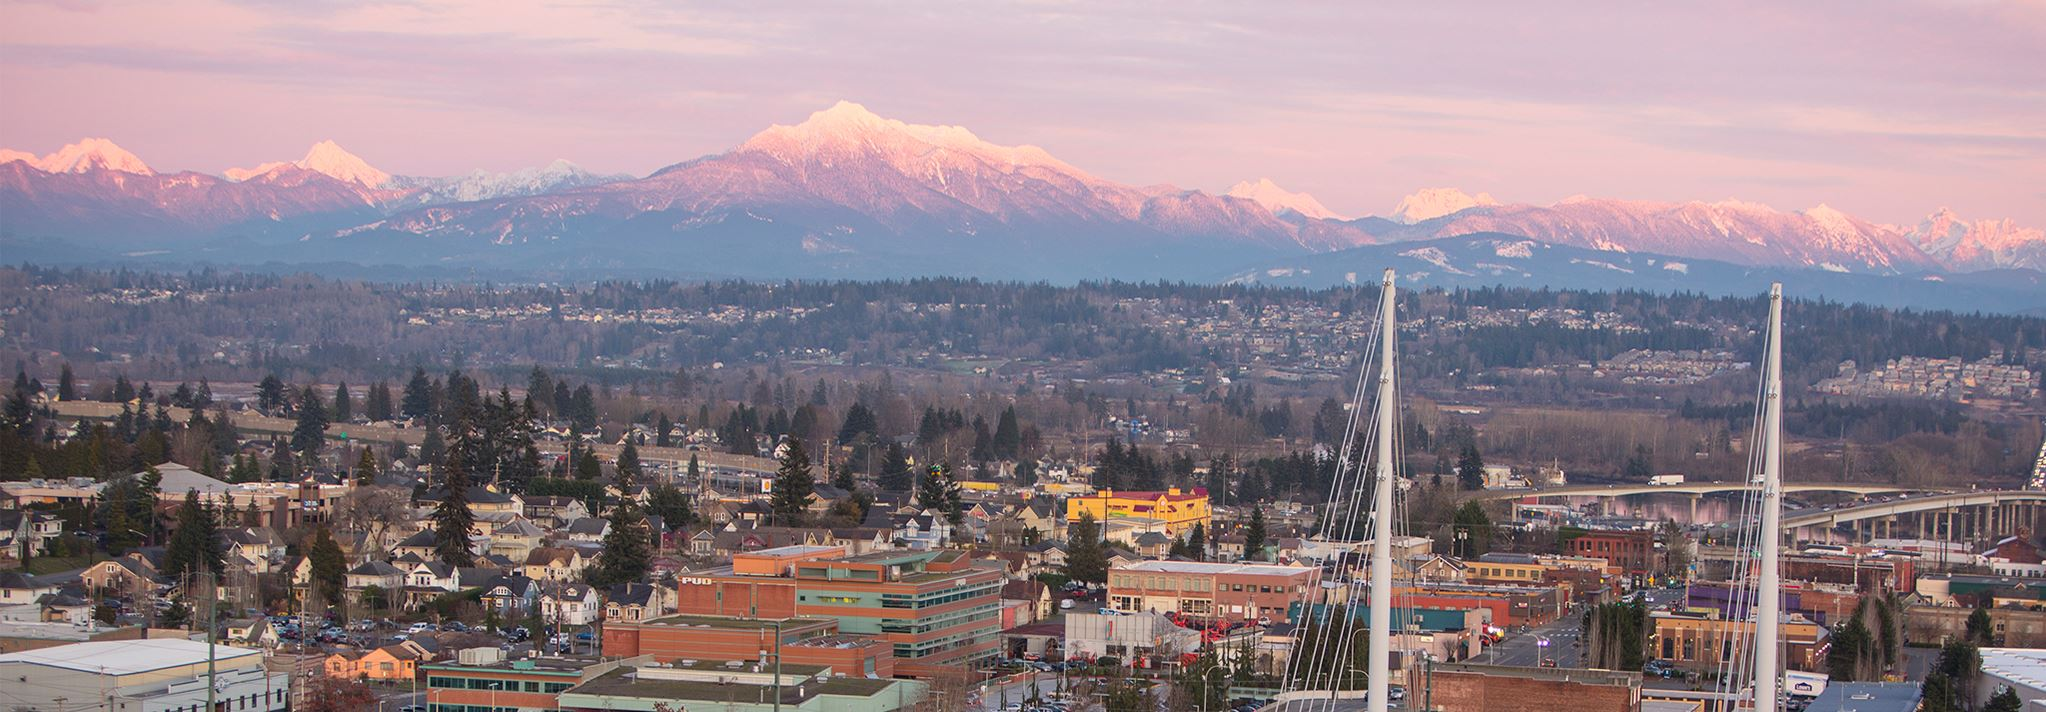 Sunset over downtown Everett and the Cascades